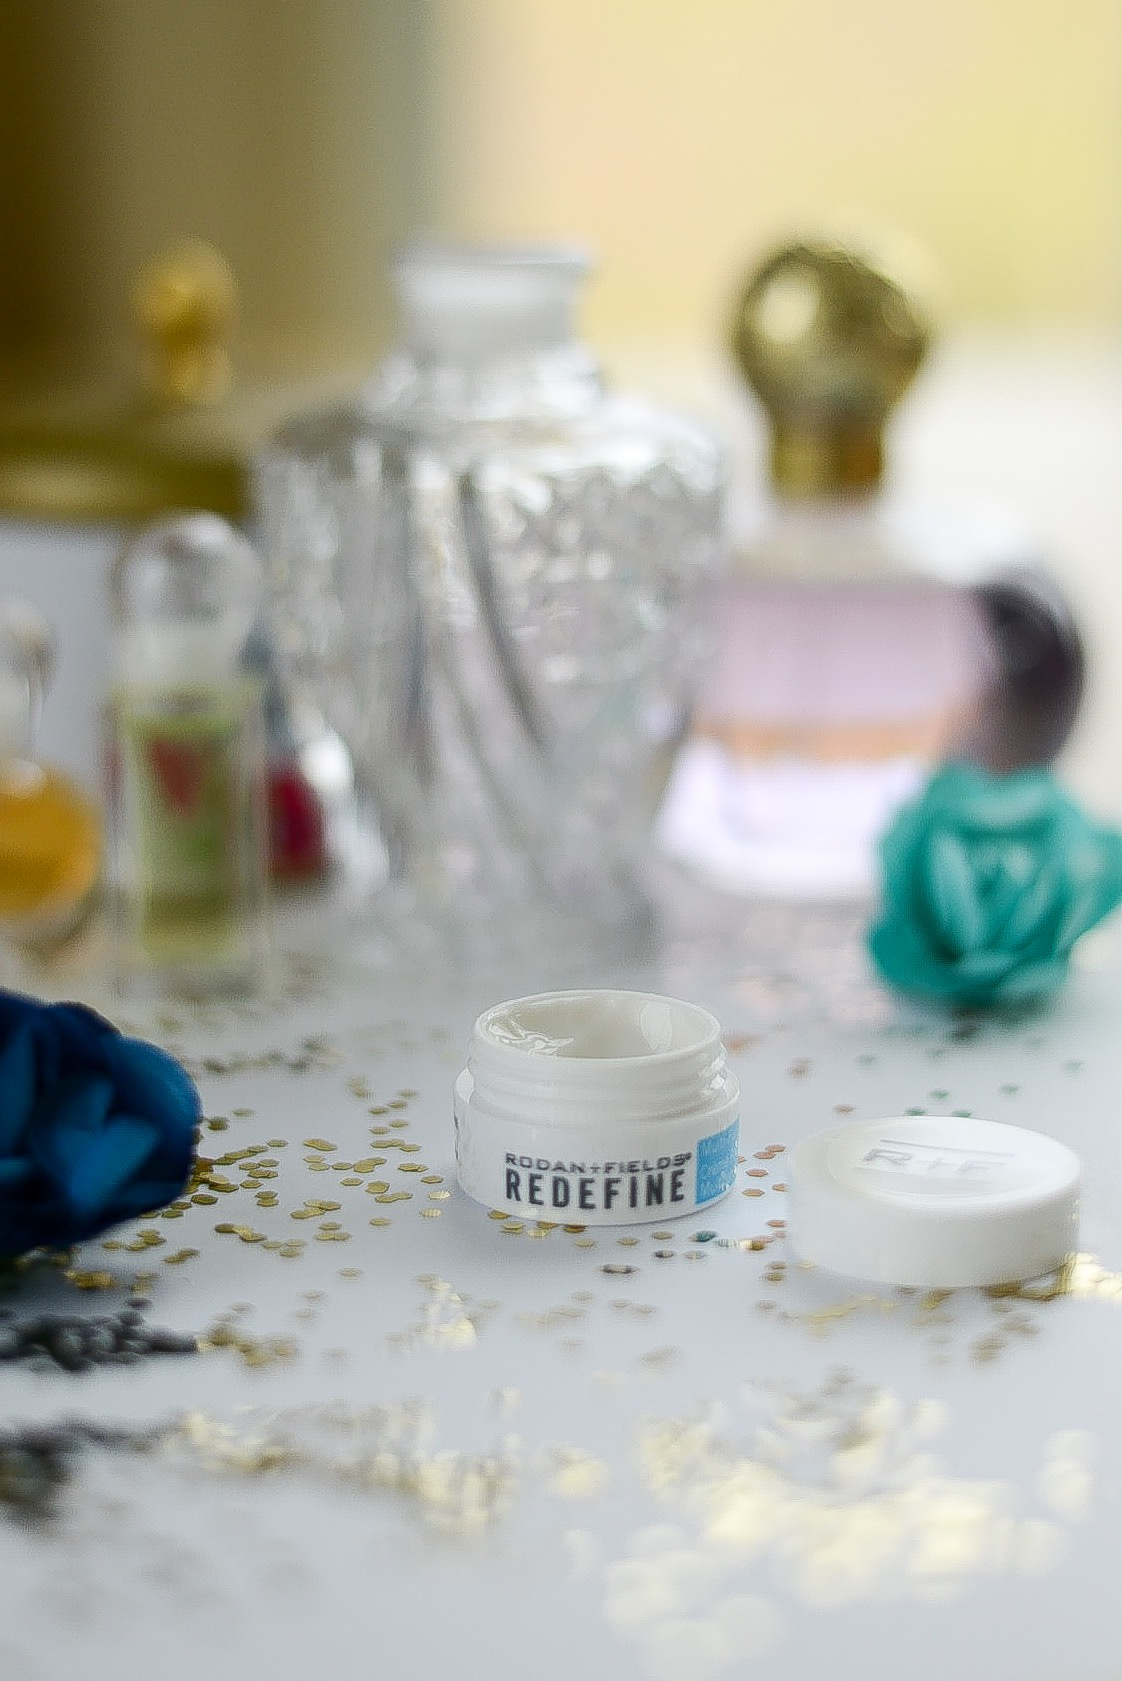 Rodan + Fields REDEFINE Multi-Function Eye Cream